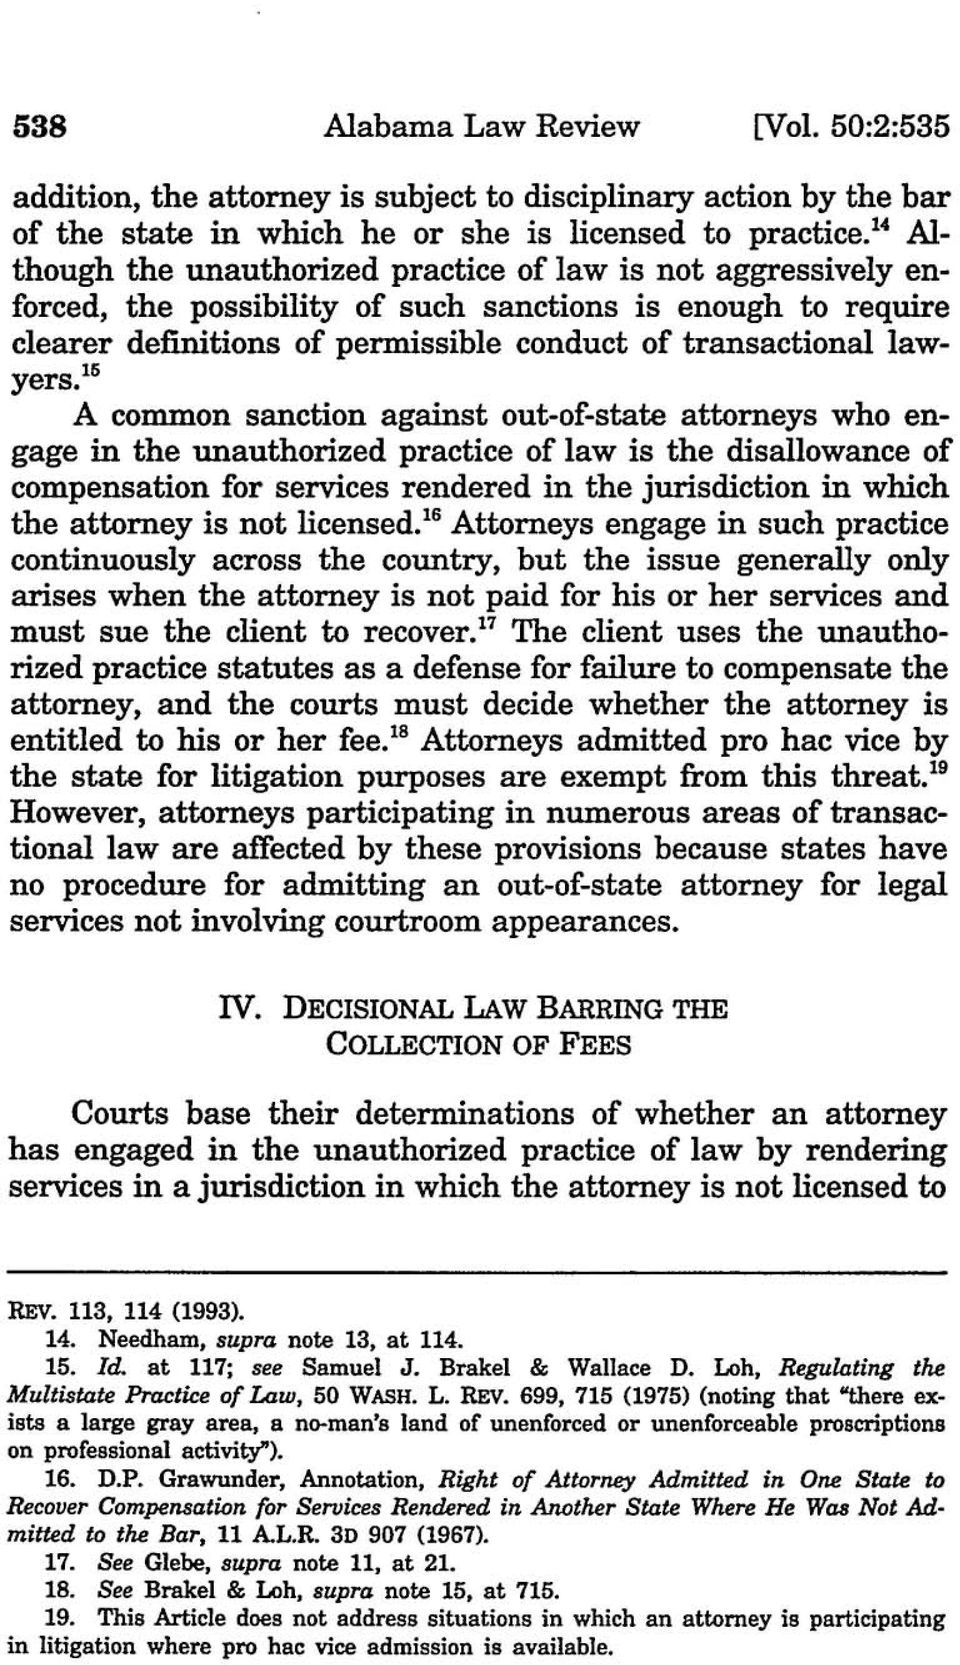 '~ A common sanction against out-of-state attorneys who engage in the unauthorized practice of law is the disallowance of compensation for services rendered in the jurisdiction in which the attorney